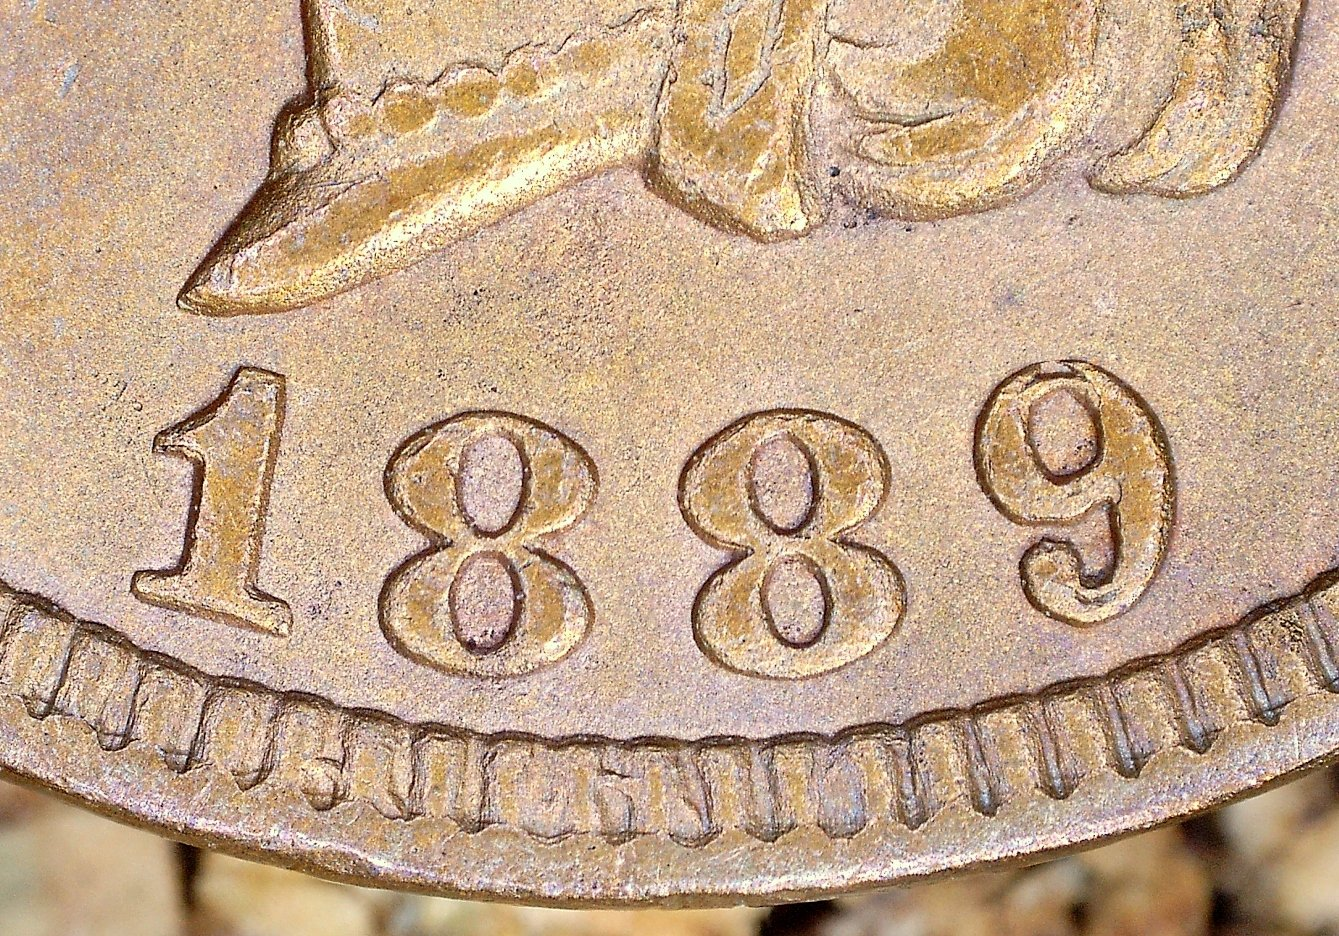 1889 MPD-001, RPD-008 - Indian Head Penny - Photo by David Killough